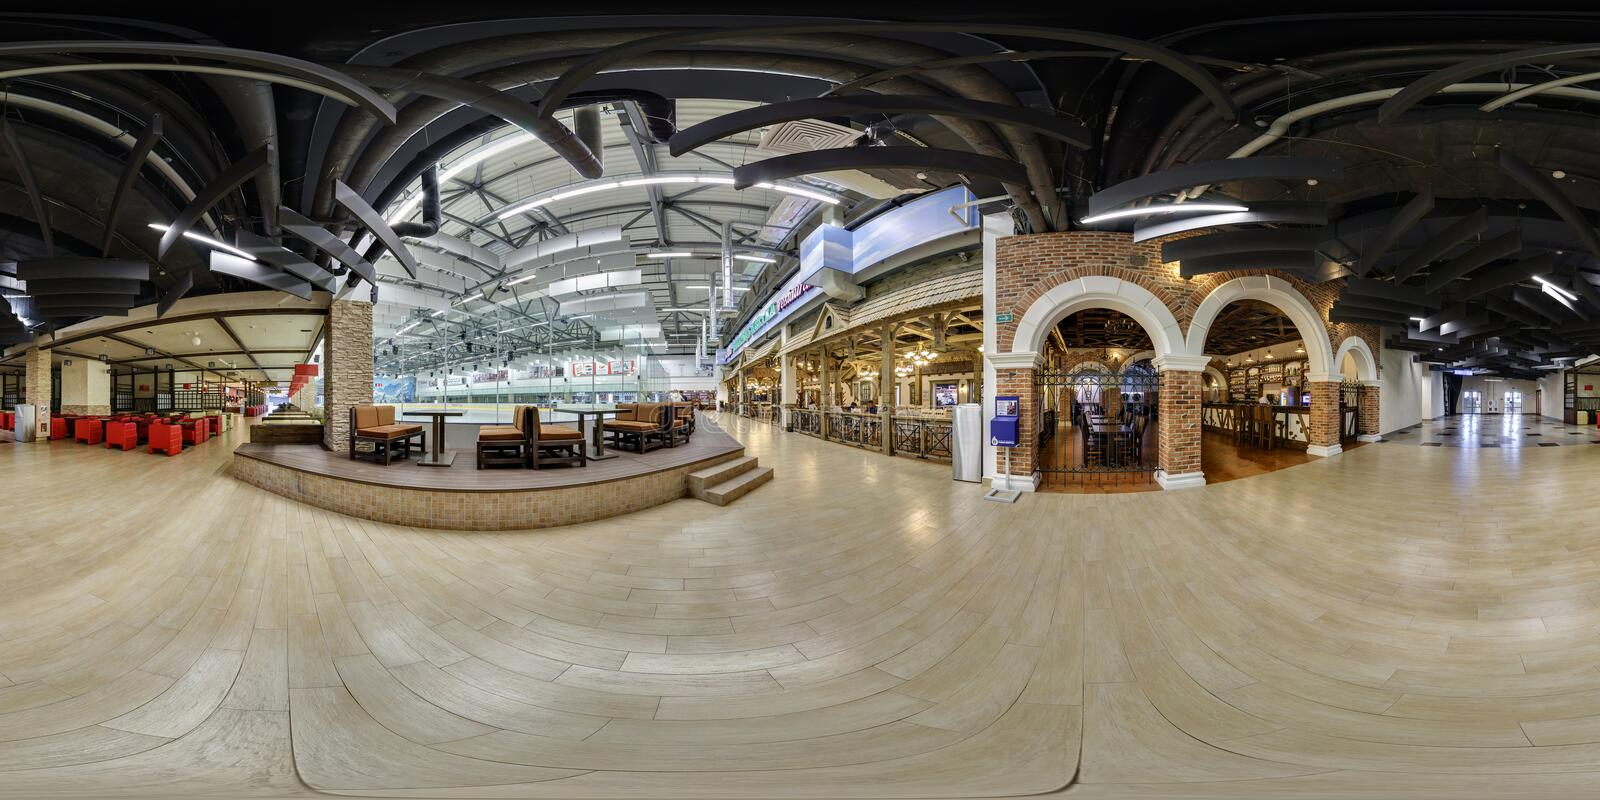 MINSK, BELARUS - AUGUST 26, 2014: Full 360 panorama in equirectangular spherical projection in stylish modern trade market center stock photos